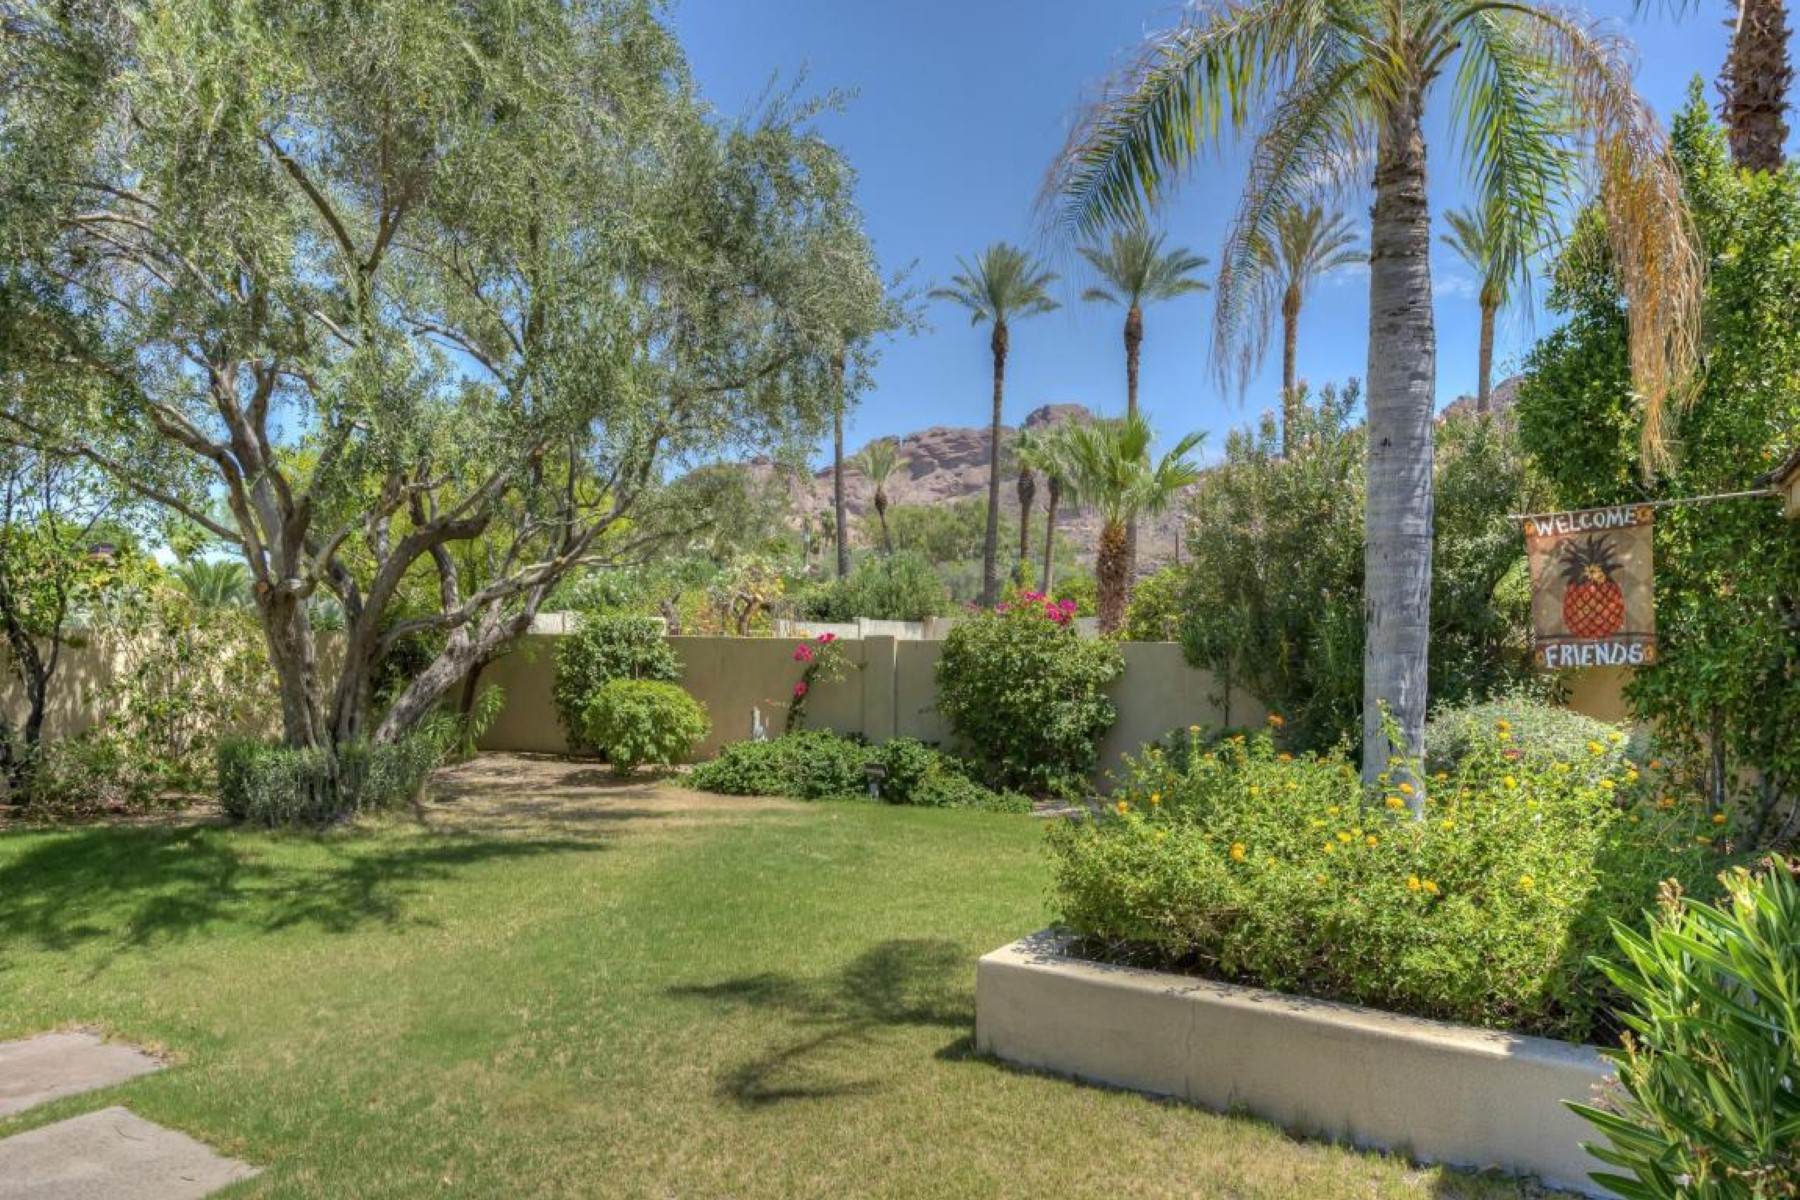 토지 용 매매 에 Incredible views of Camelback mountain this large lot 4601 N Arcadia Dr 4 Phoenix, 아리조나, 85018 미국